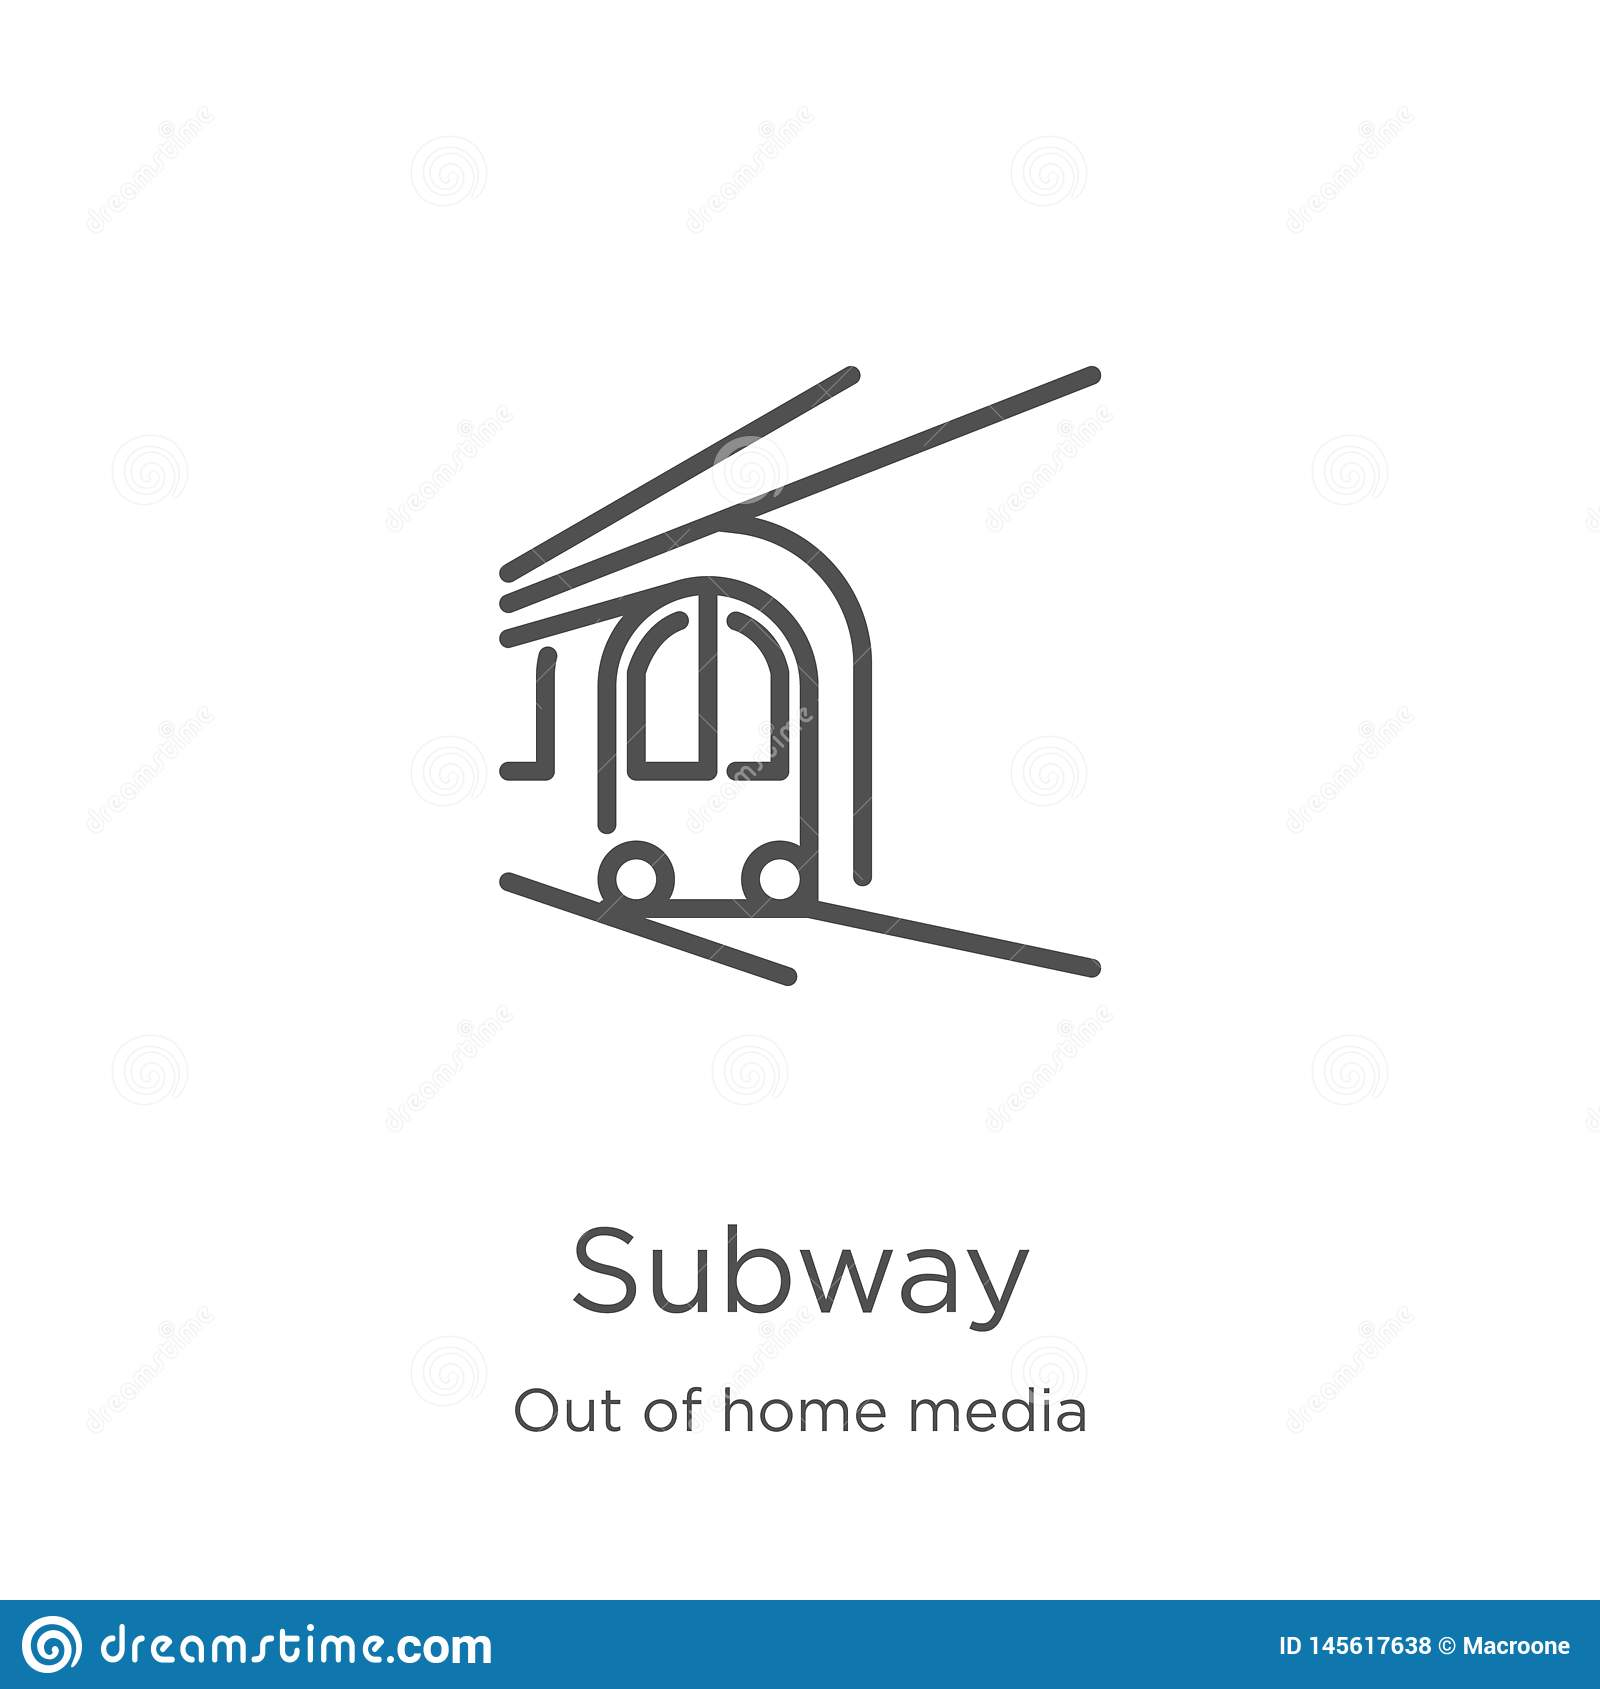 subway icon vector from out of home media collection. Thin line subway outline icon vector illustration. Outline, thin line subway